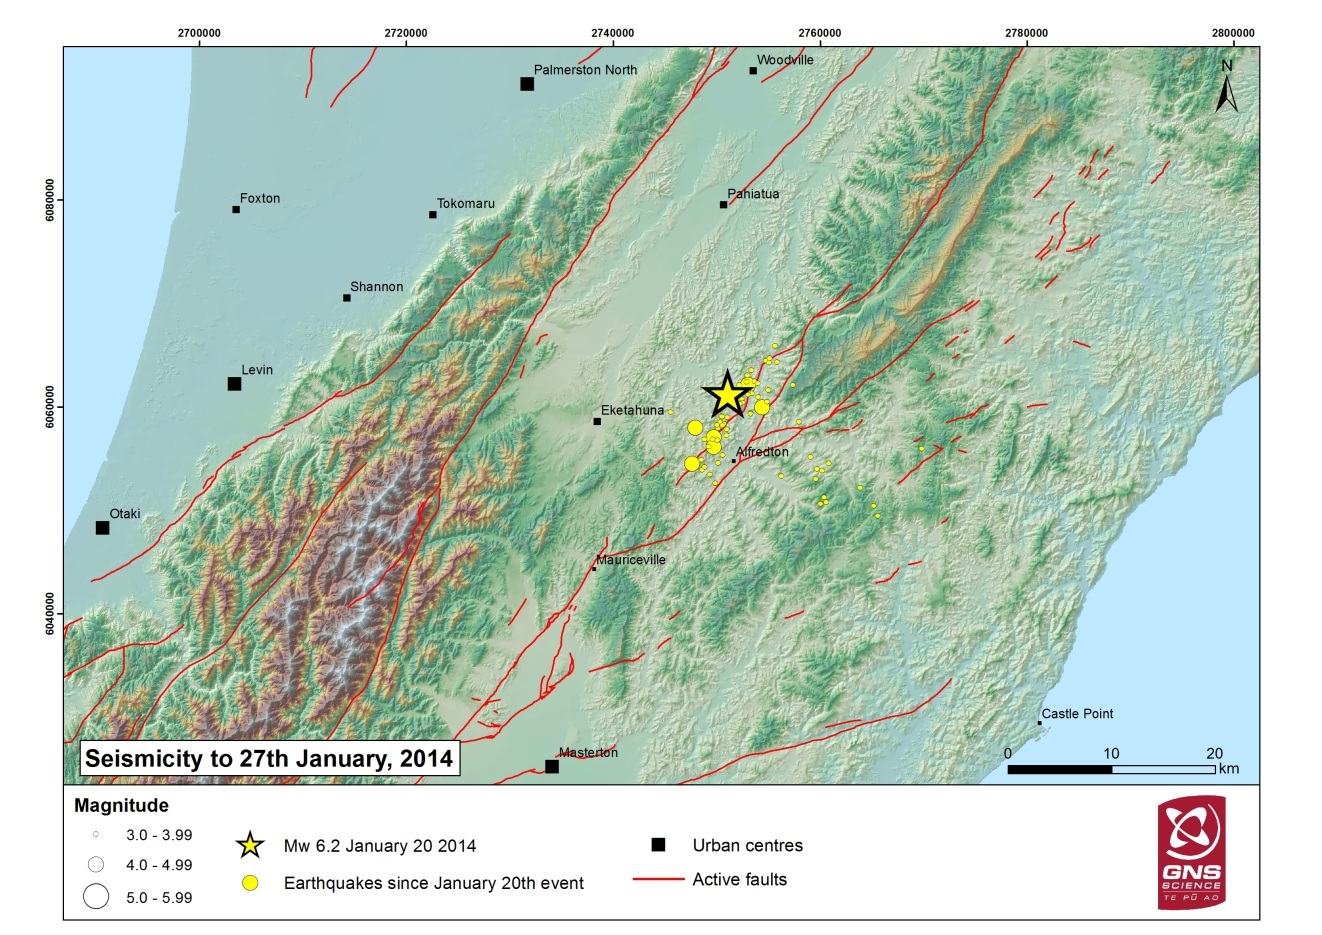 Aftershocks following the Eketahuna earthquake up to 27/01/2014